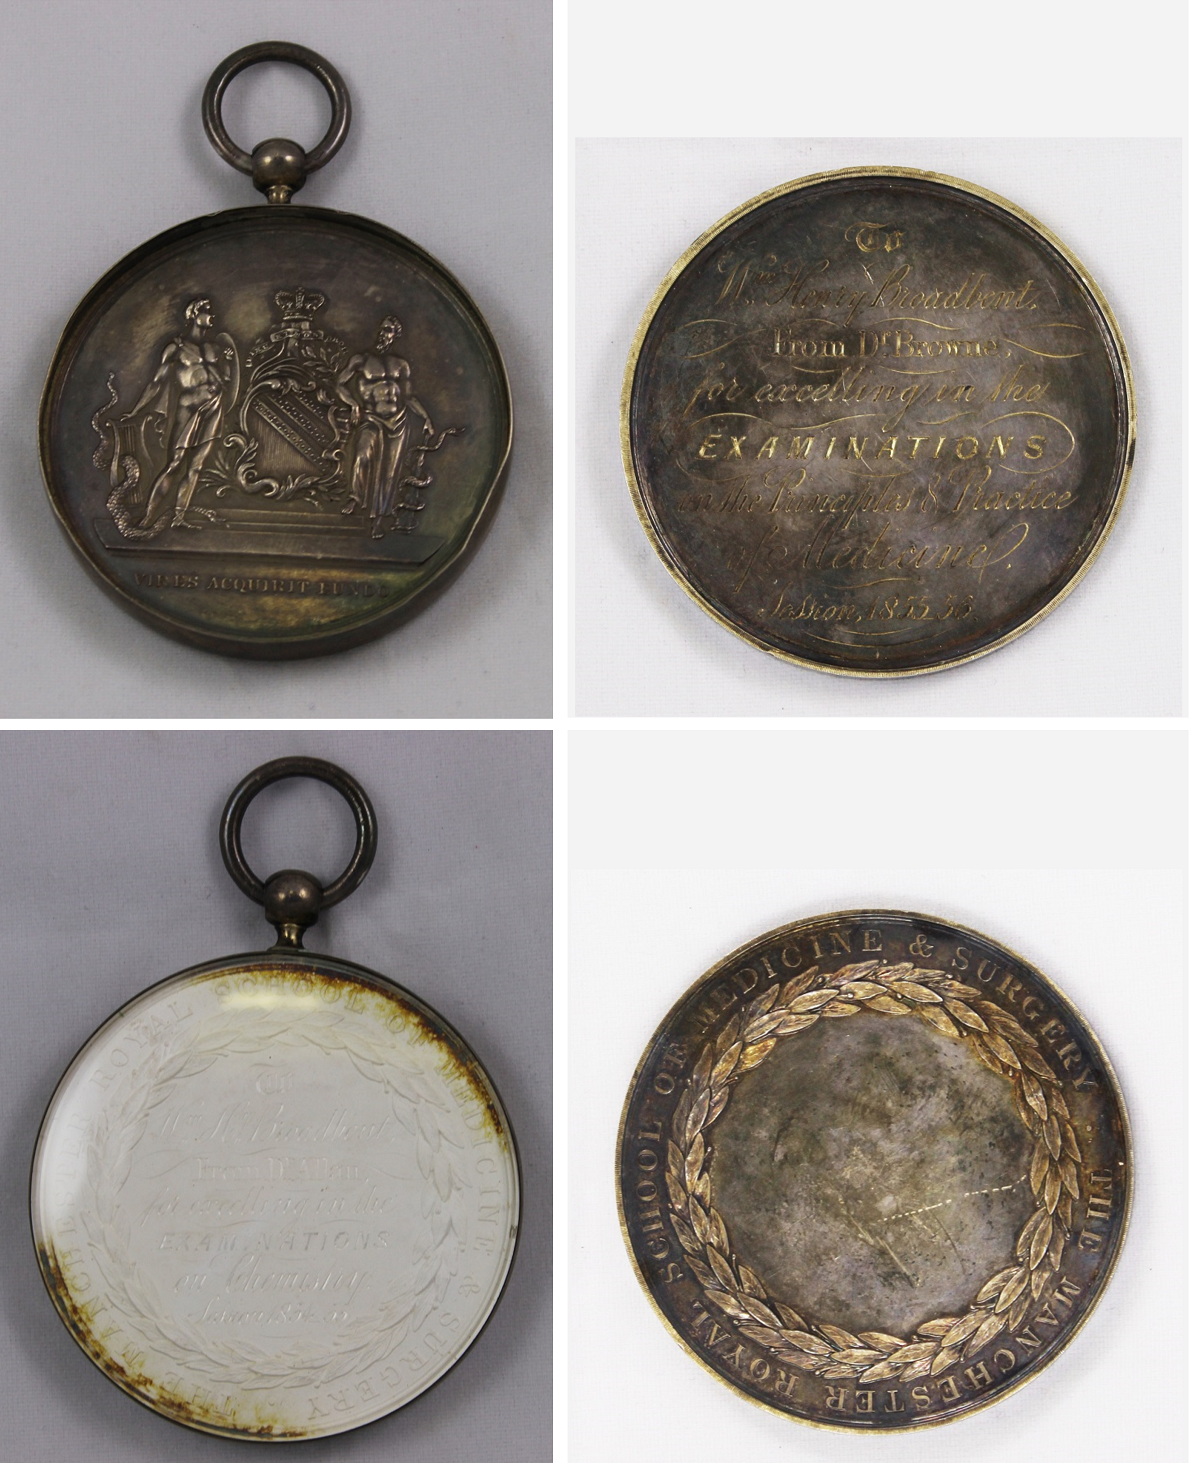 Two of the medals awarded to William Broadbent for excelling in the examinations of the Royal Manchester School of Medicine and Surgery - Chemistry (1855) and Principle and Practice of Medicine (1857)